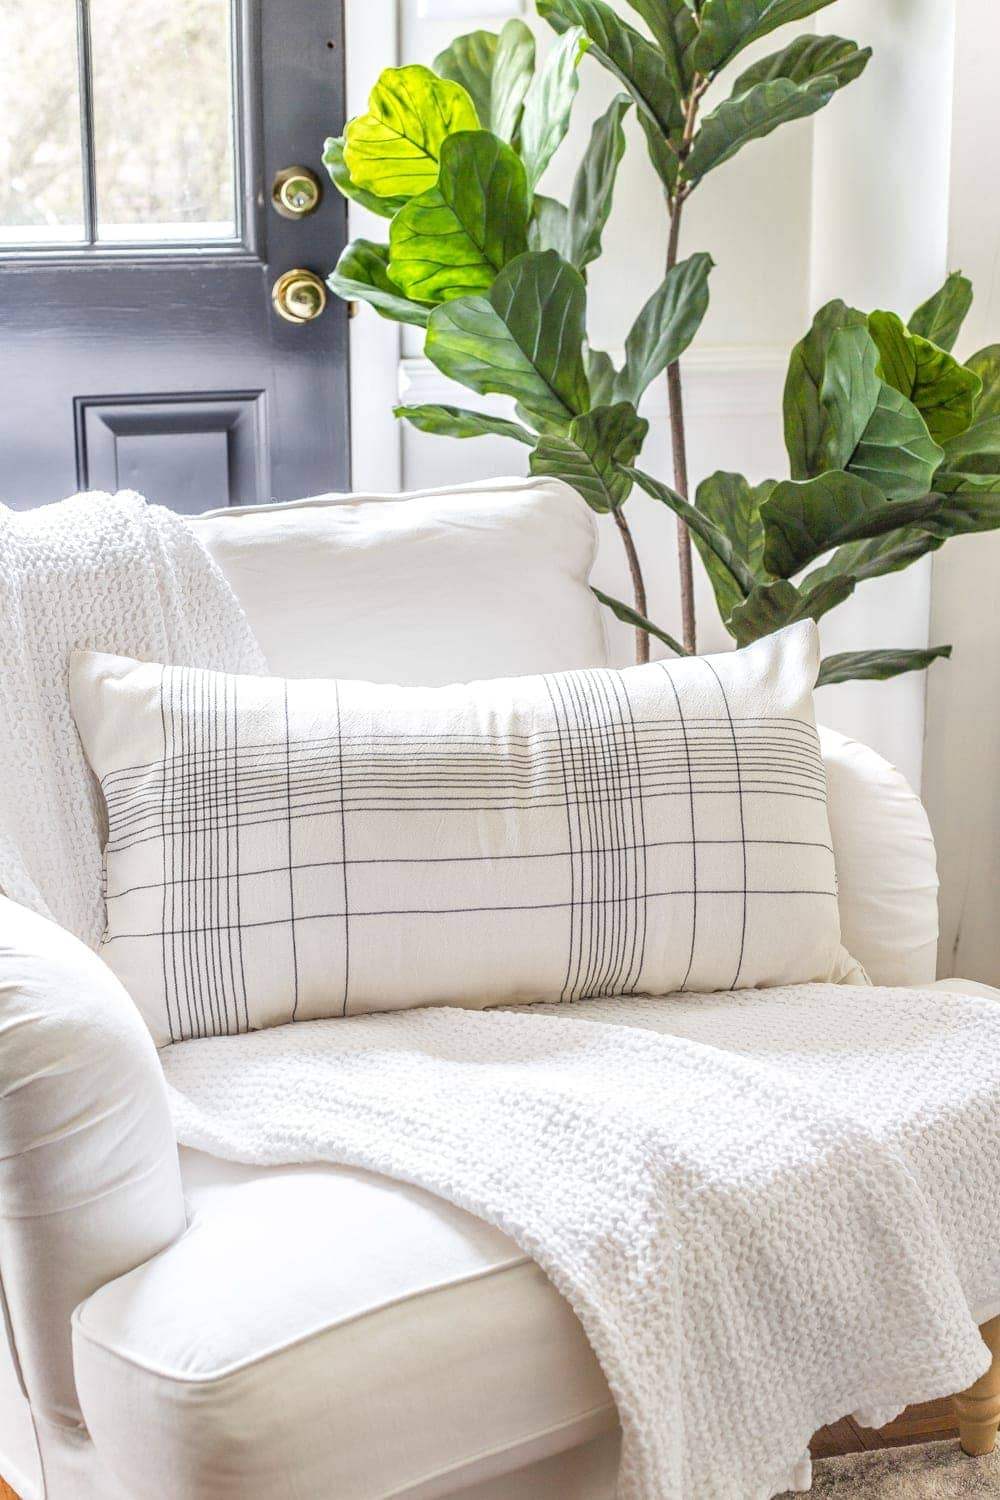 3 items you can repurpose into DIY no-sew throw pillows | How to make a throw pillow from a kitchen towel.